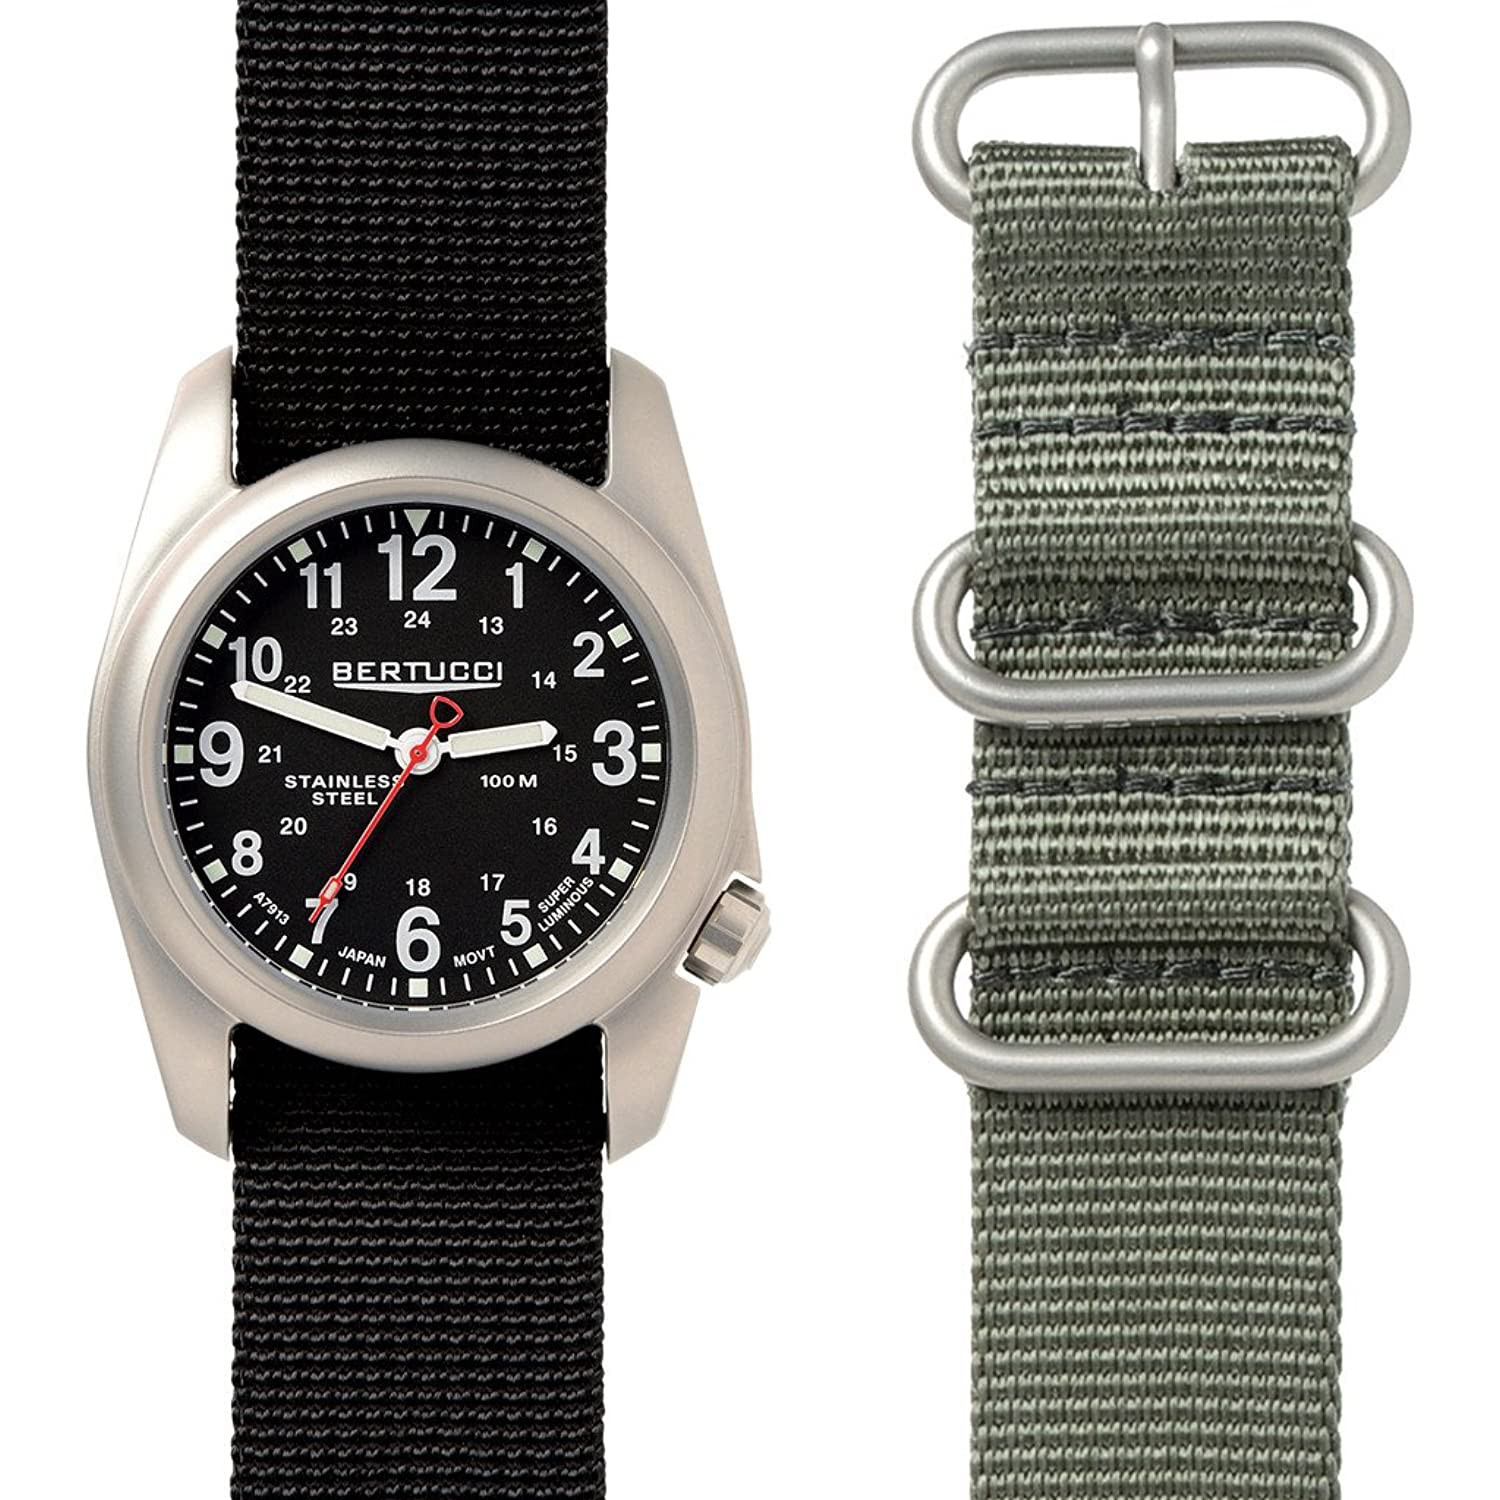 Bertucci A-2S Field Watch Box Set | Black Nylon + Defender Drab Nylon 01050